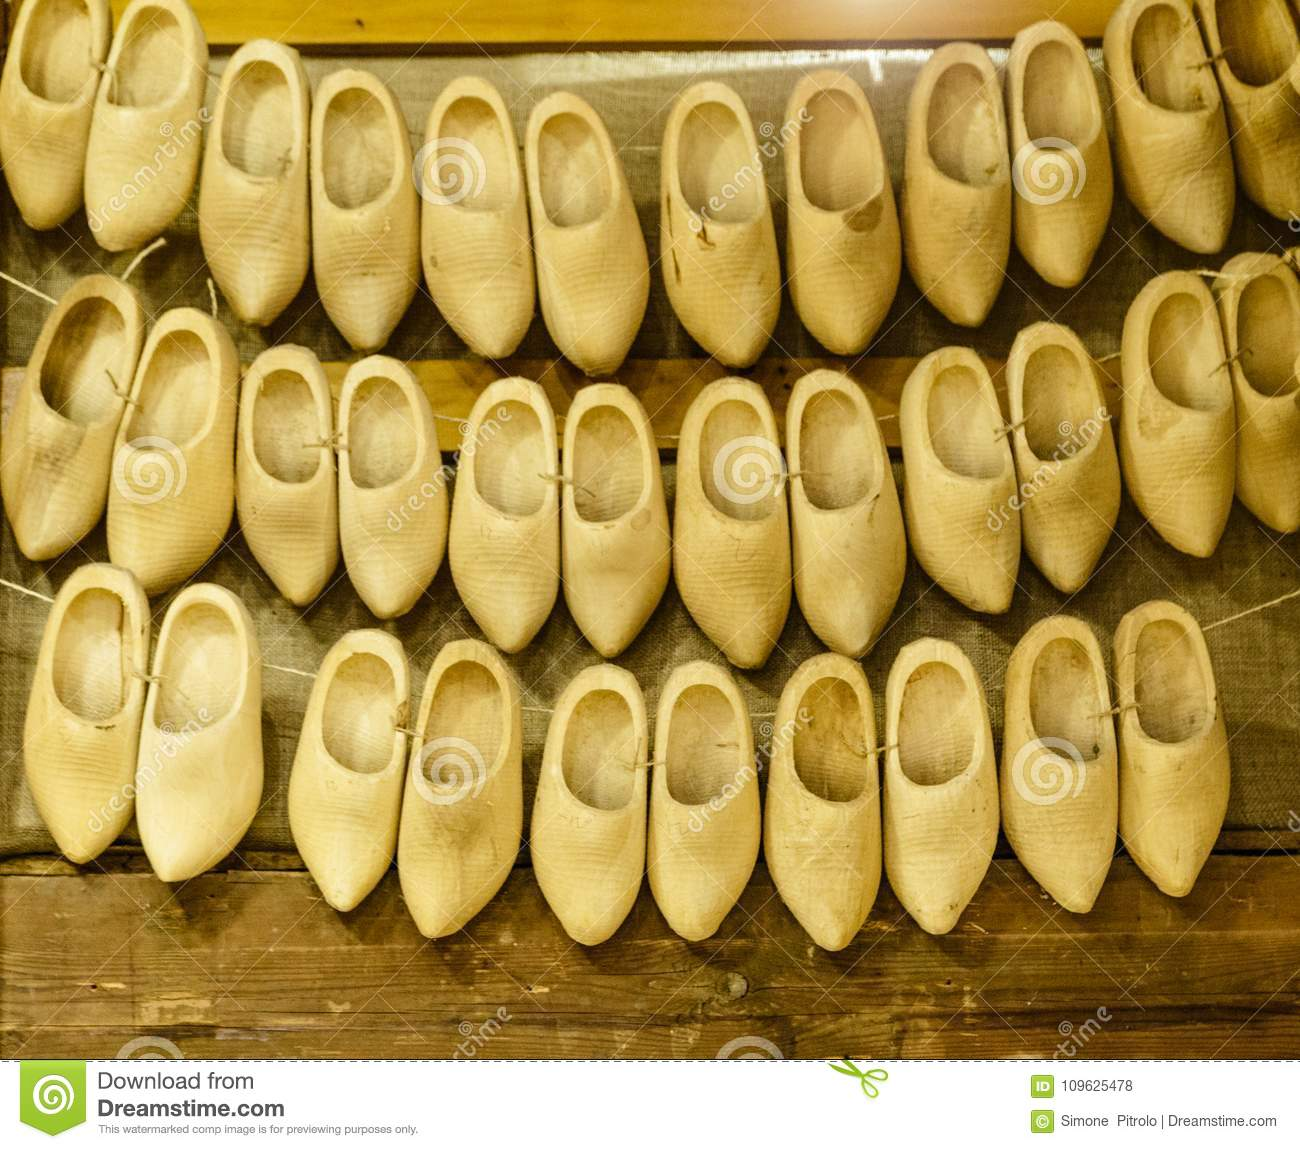 Wooden Shoes, Clogs, Typican Dutch Shoes, Amsterdam